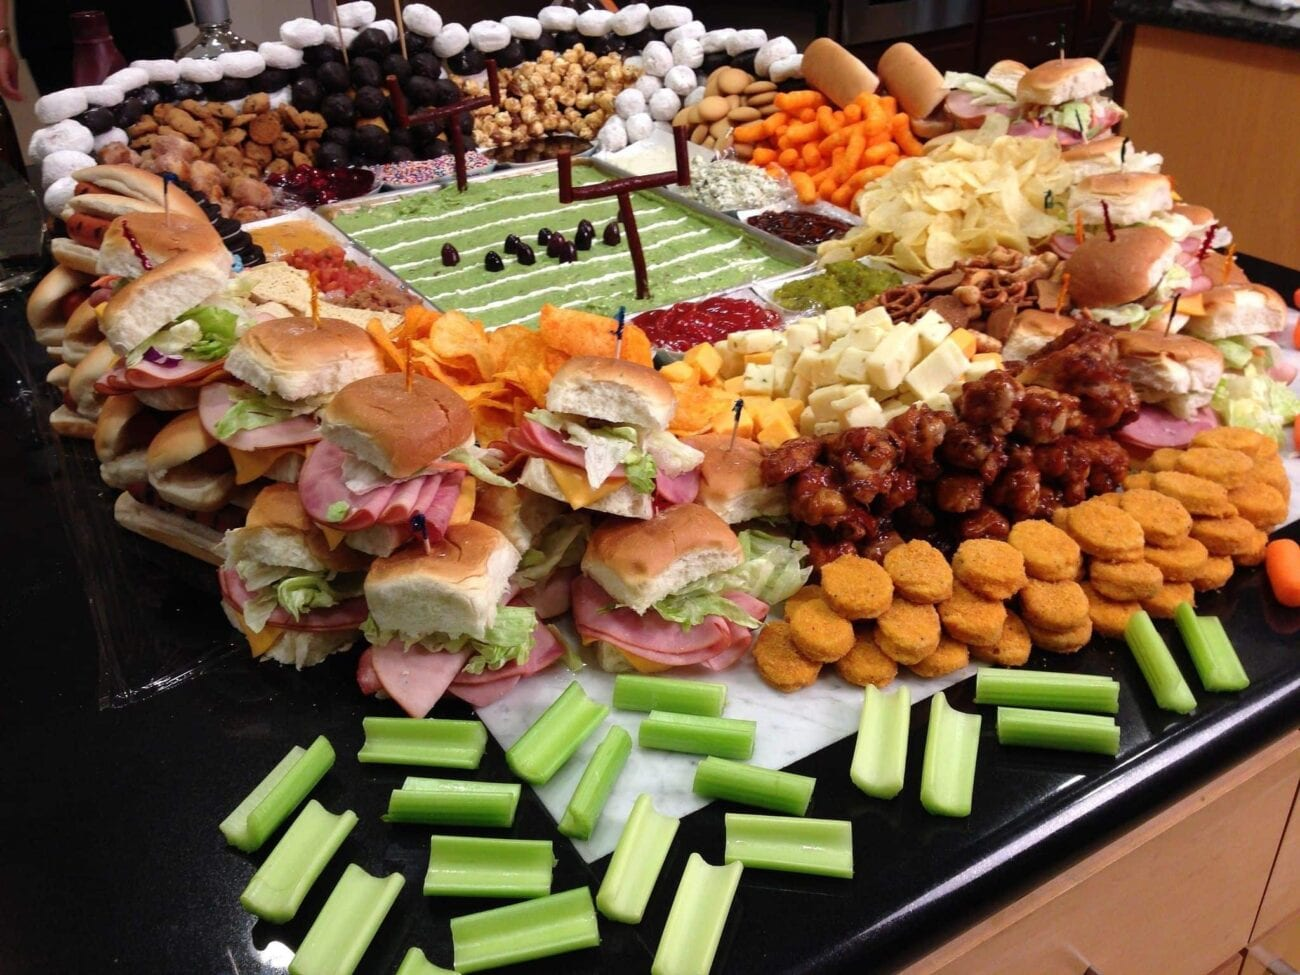 Yeah, sure, the Super Bowl is cool. But everybody knows the star of your party is the food. Score a touchdown with these football snacks staples!